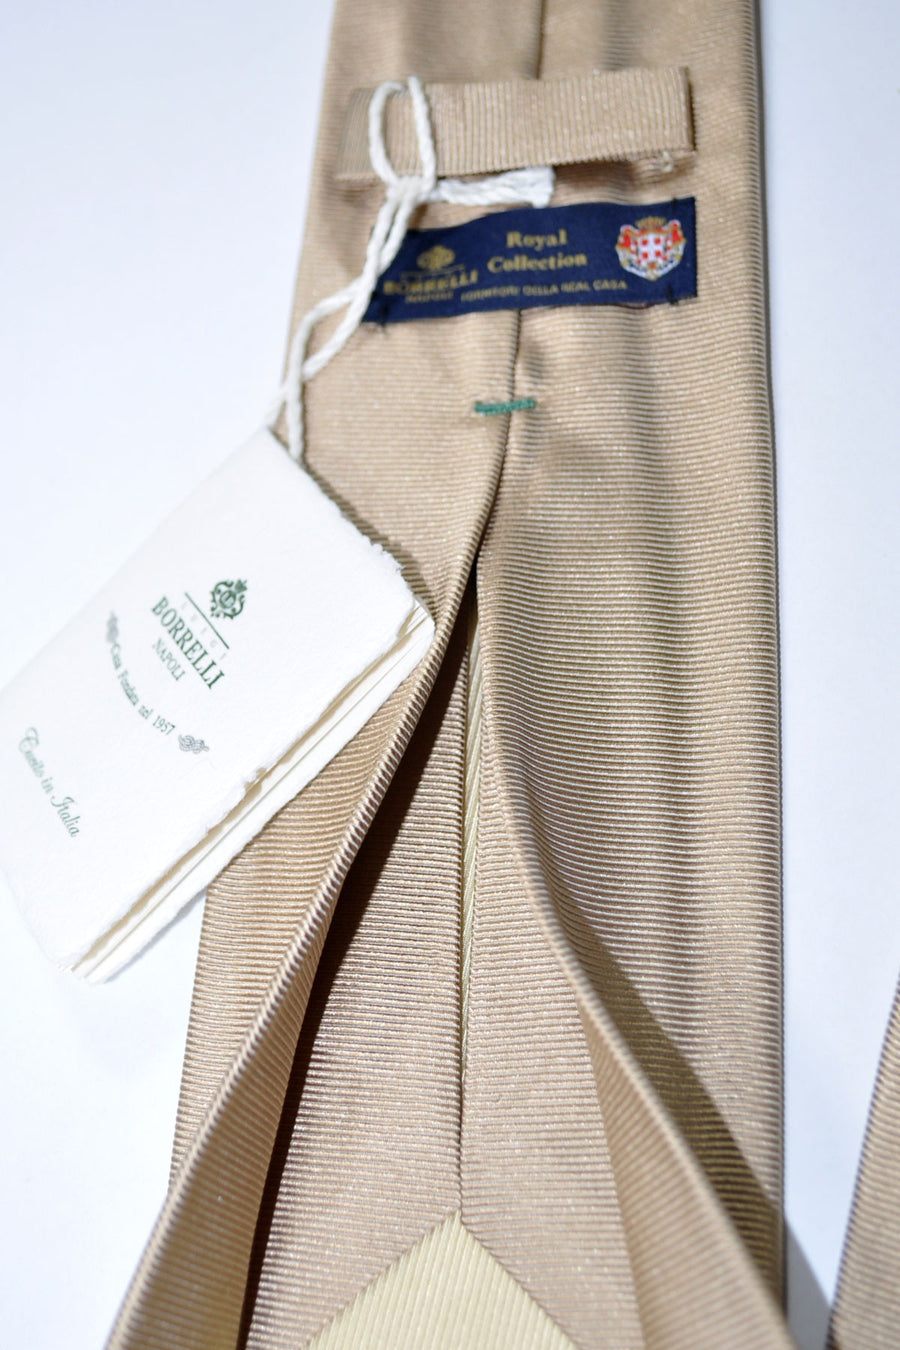 Luigi Borrelli Sevenfold Tie Royal Collection Taupe Grossgrain